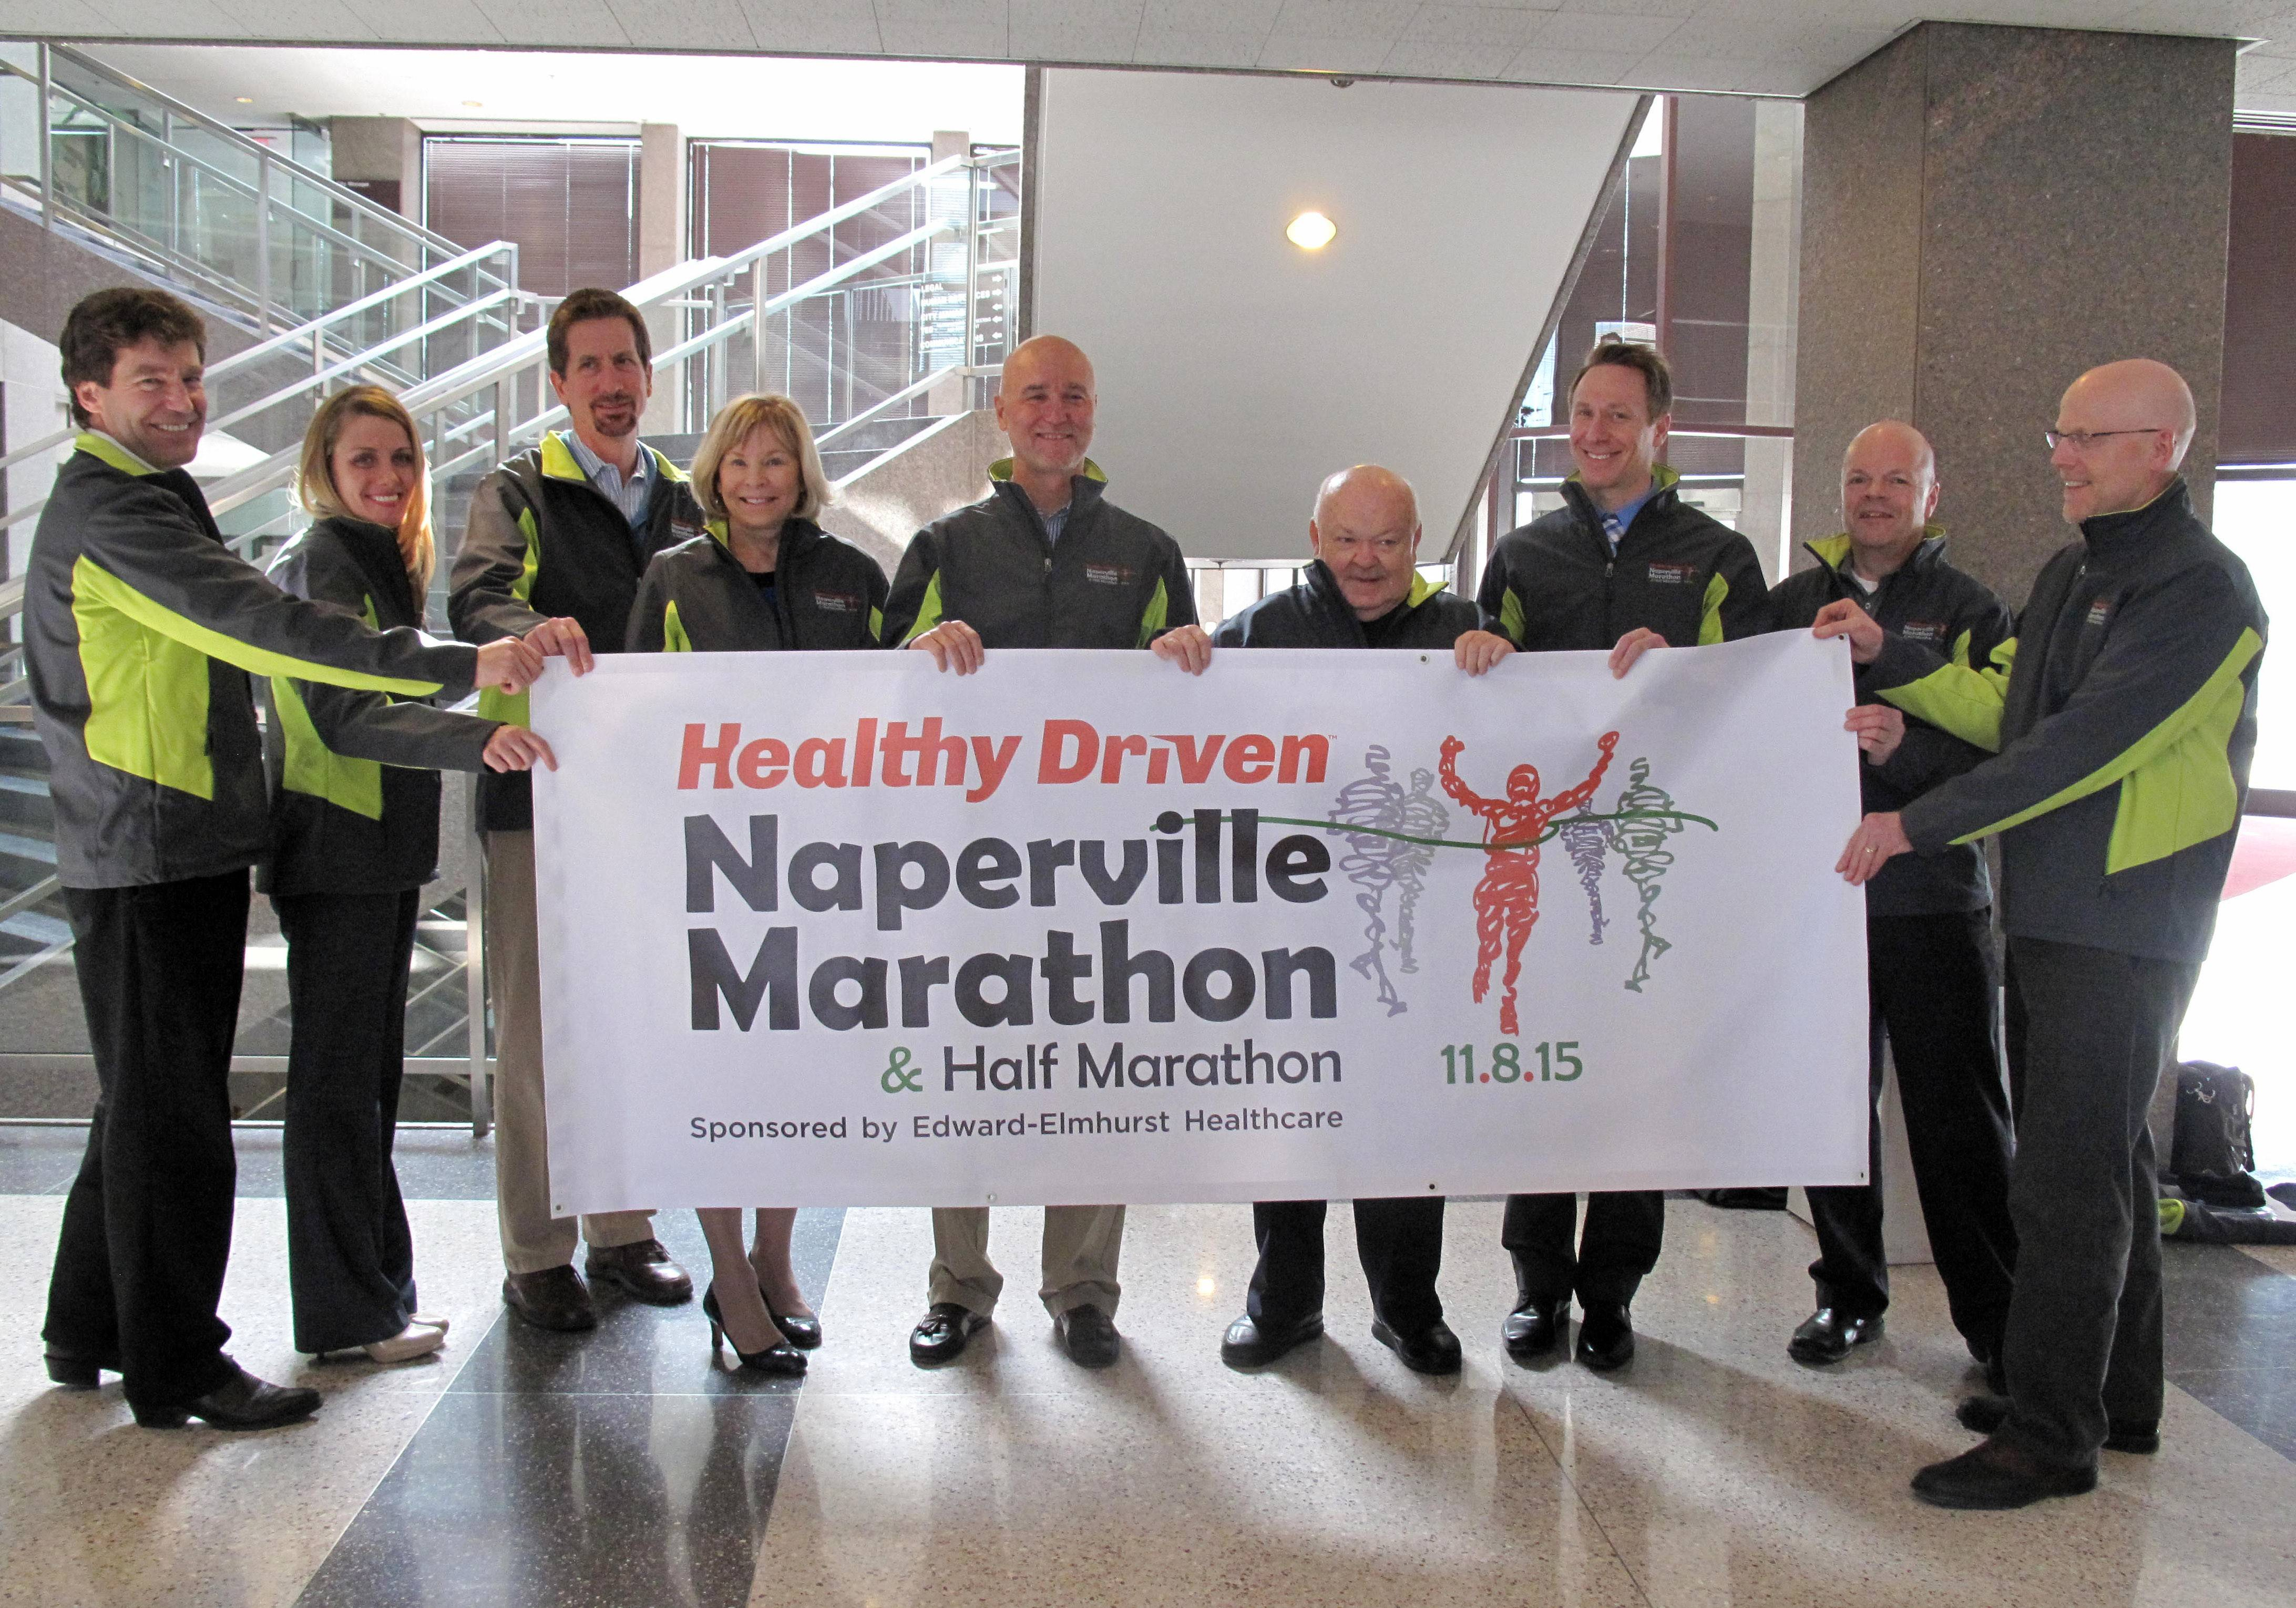 Officials from Naper Events, the city of Naperville and Edward-Elmhurst Healthcare, including Craig Bixler, Meghan Moreno, Doug Krieger, Pam Davis, Dave Sheble, Mayor George Pradel, Dr. Michael Hartmann, Tom Horvath and Brian Davis, introduce the new name for the third annual marathon scheduled for Nov. 8 in Naperville: the Healthy Driven Naperville Marathon and Half Marathon sponsored by Edward-Elmhurst Healthcare.